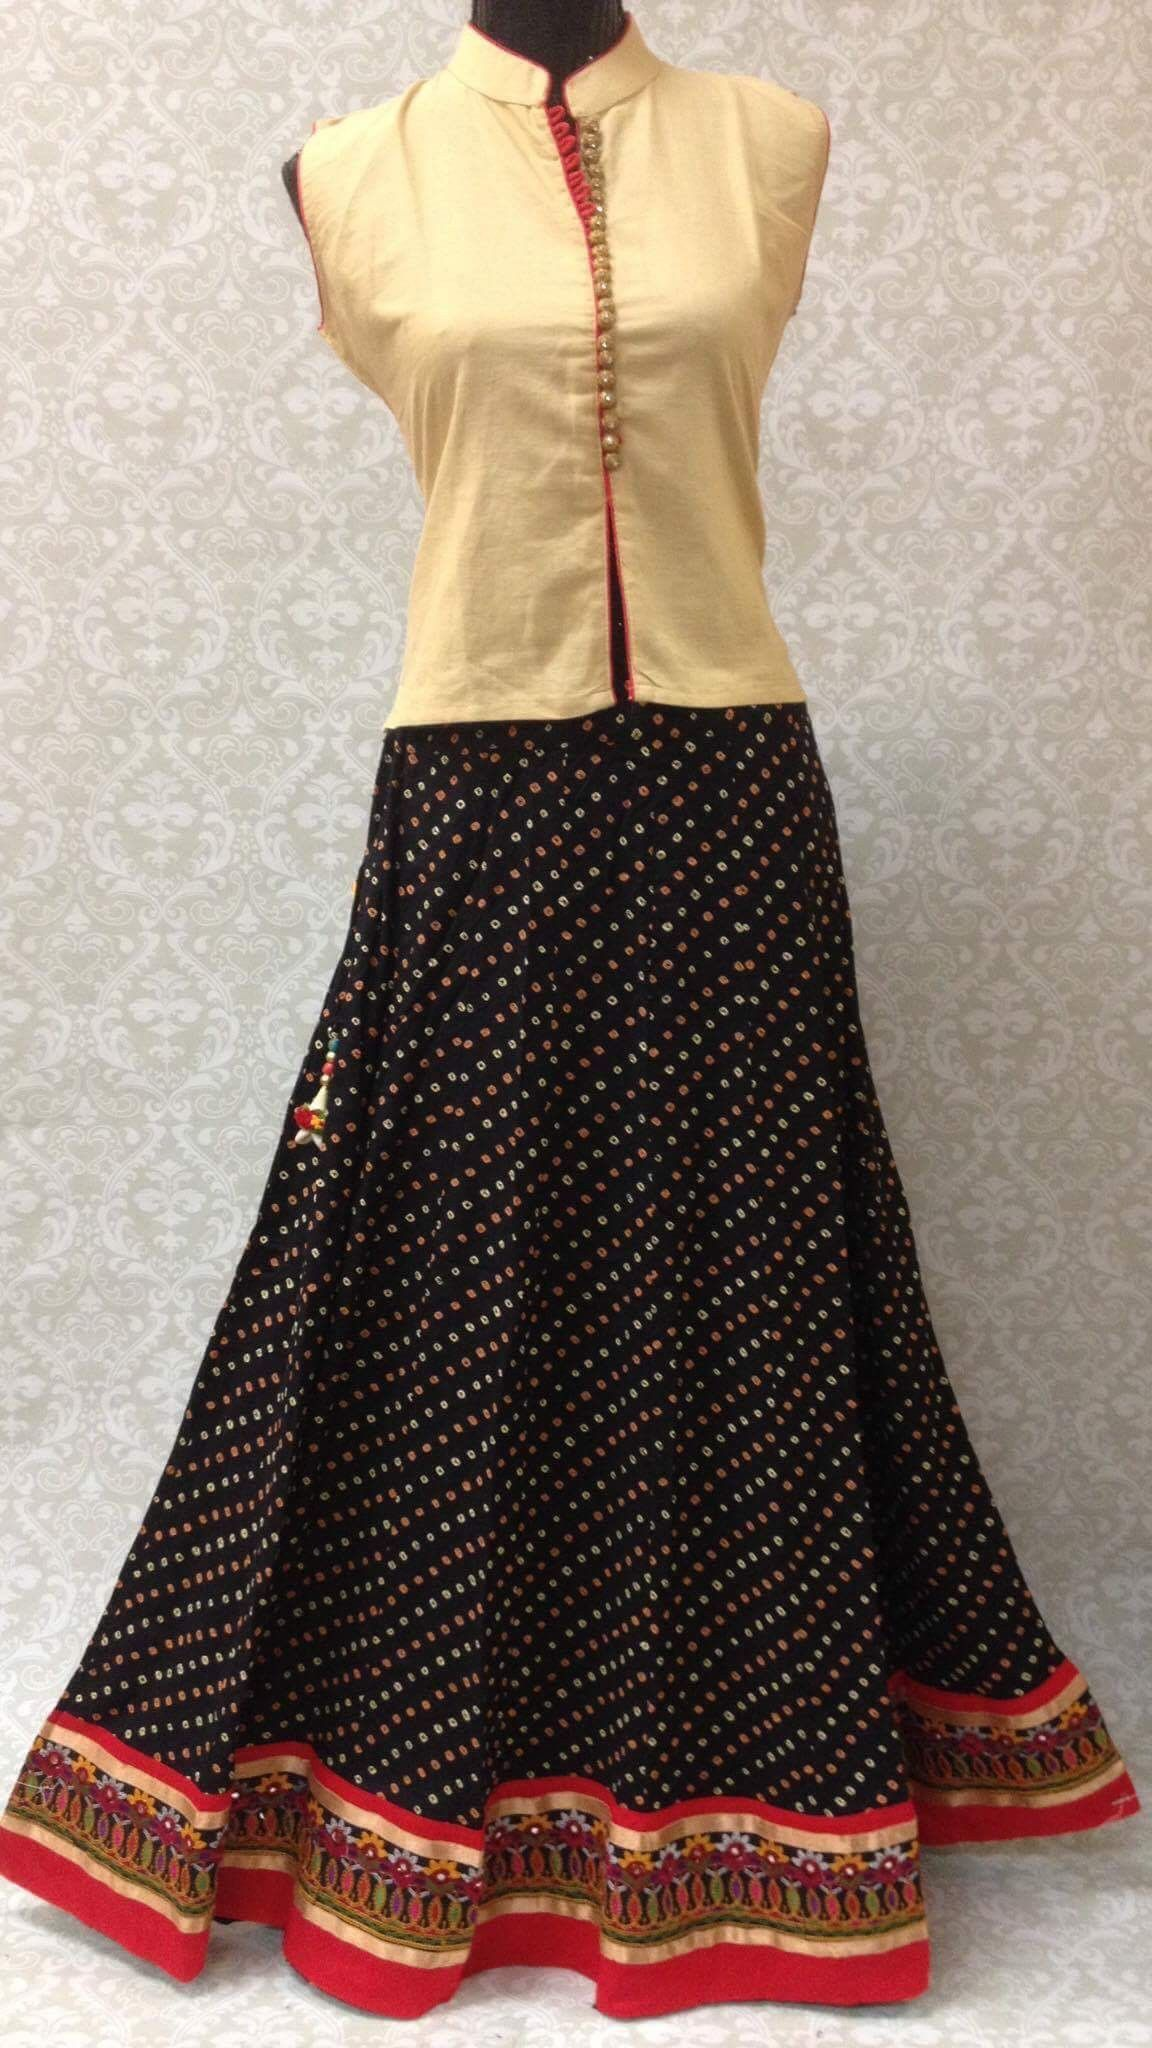 d6e404011b48 Beautiful long cotton bandhani skirt with Zari and multi colored border.A long  skirt enhances women's fashion. It is a versatile outfit and a must-have in  ...